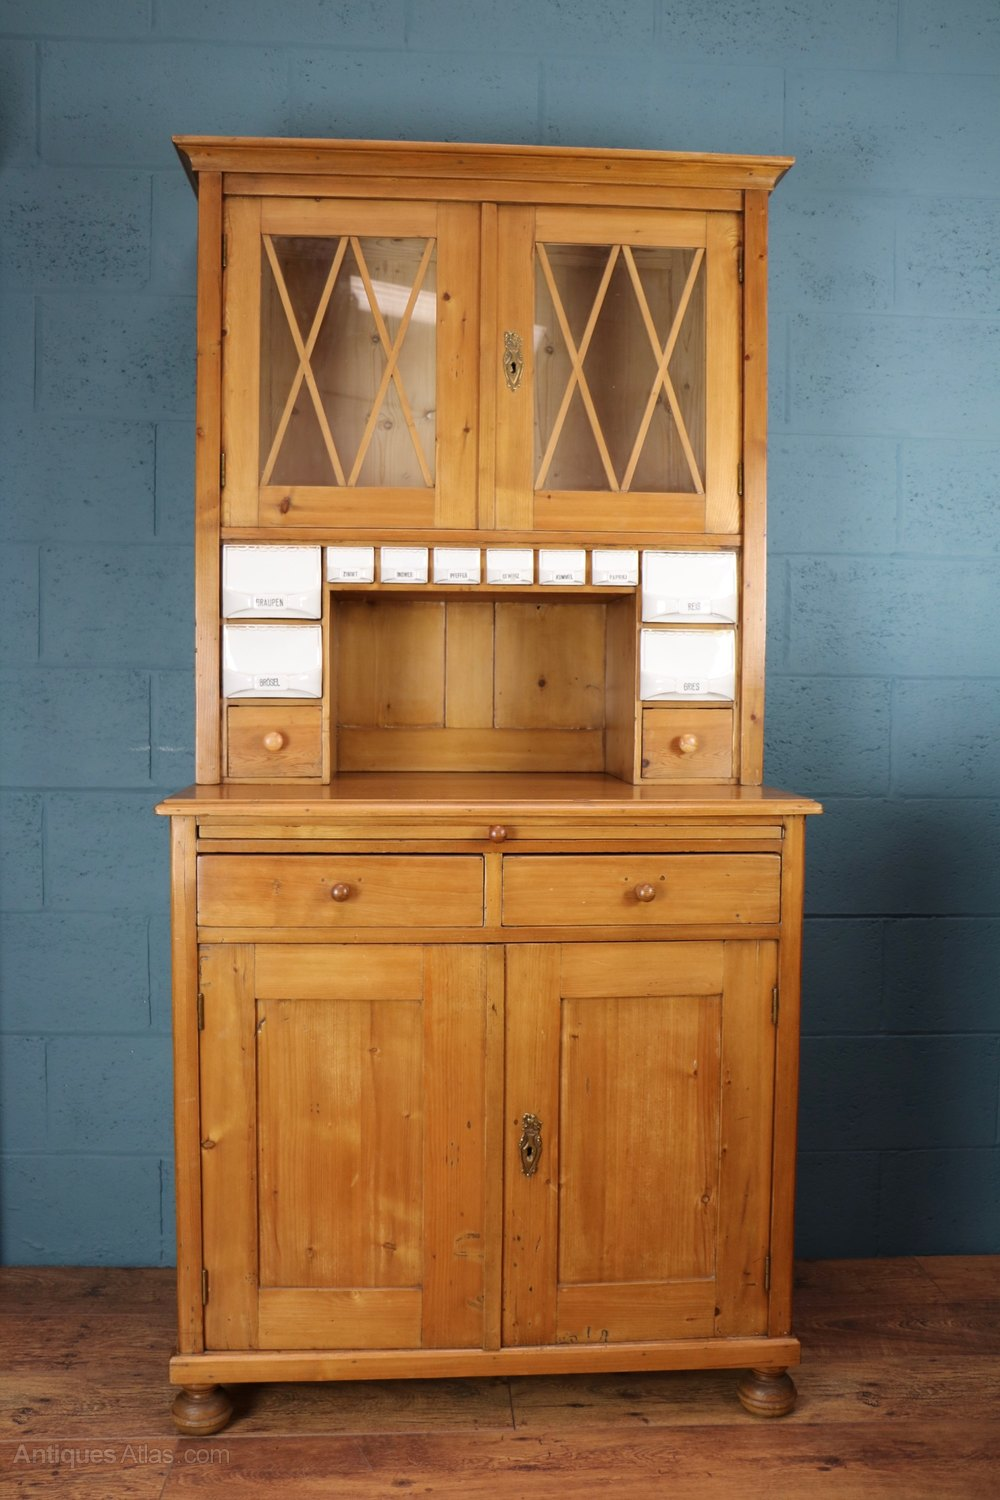 German Pine Kitchen Pantry Cupboard Antiques Atlas